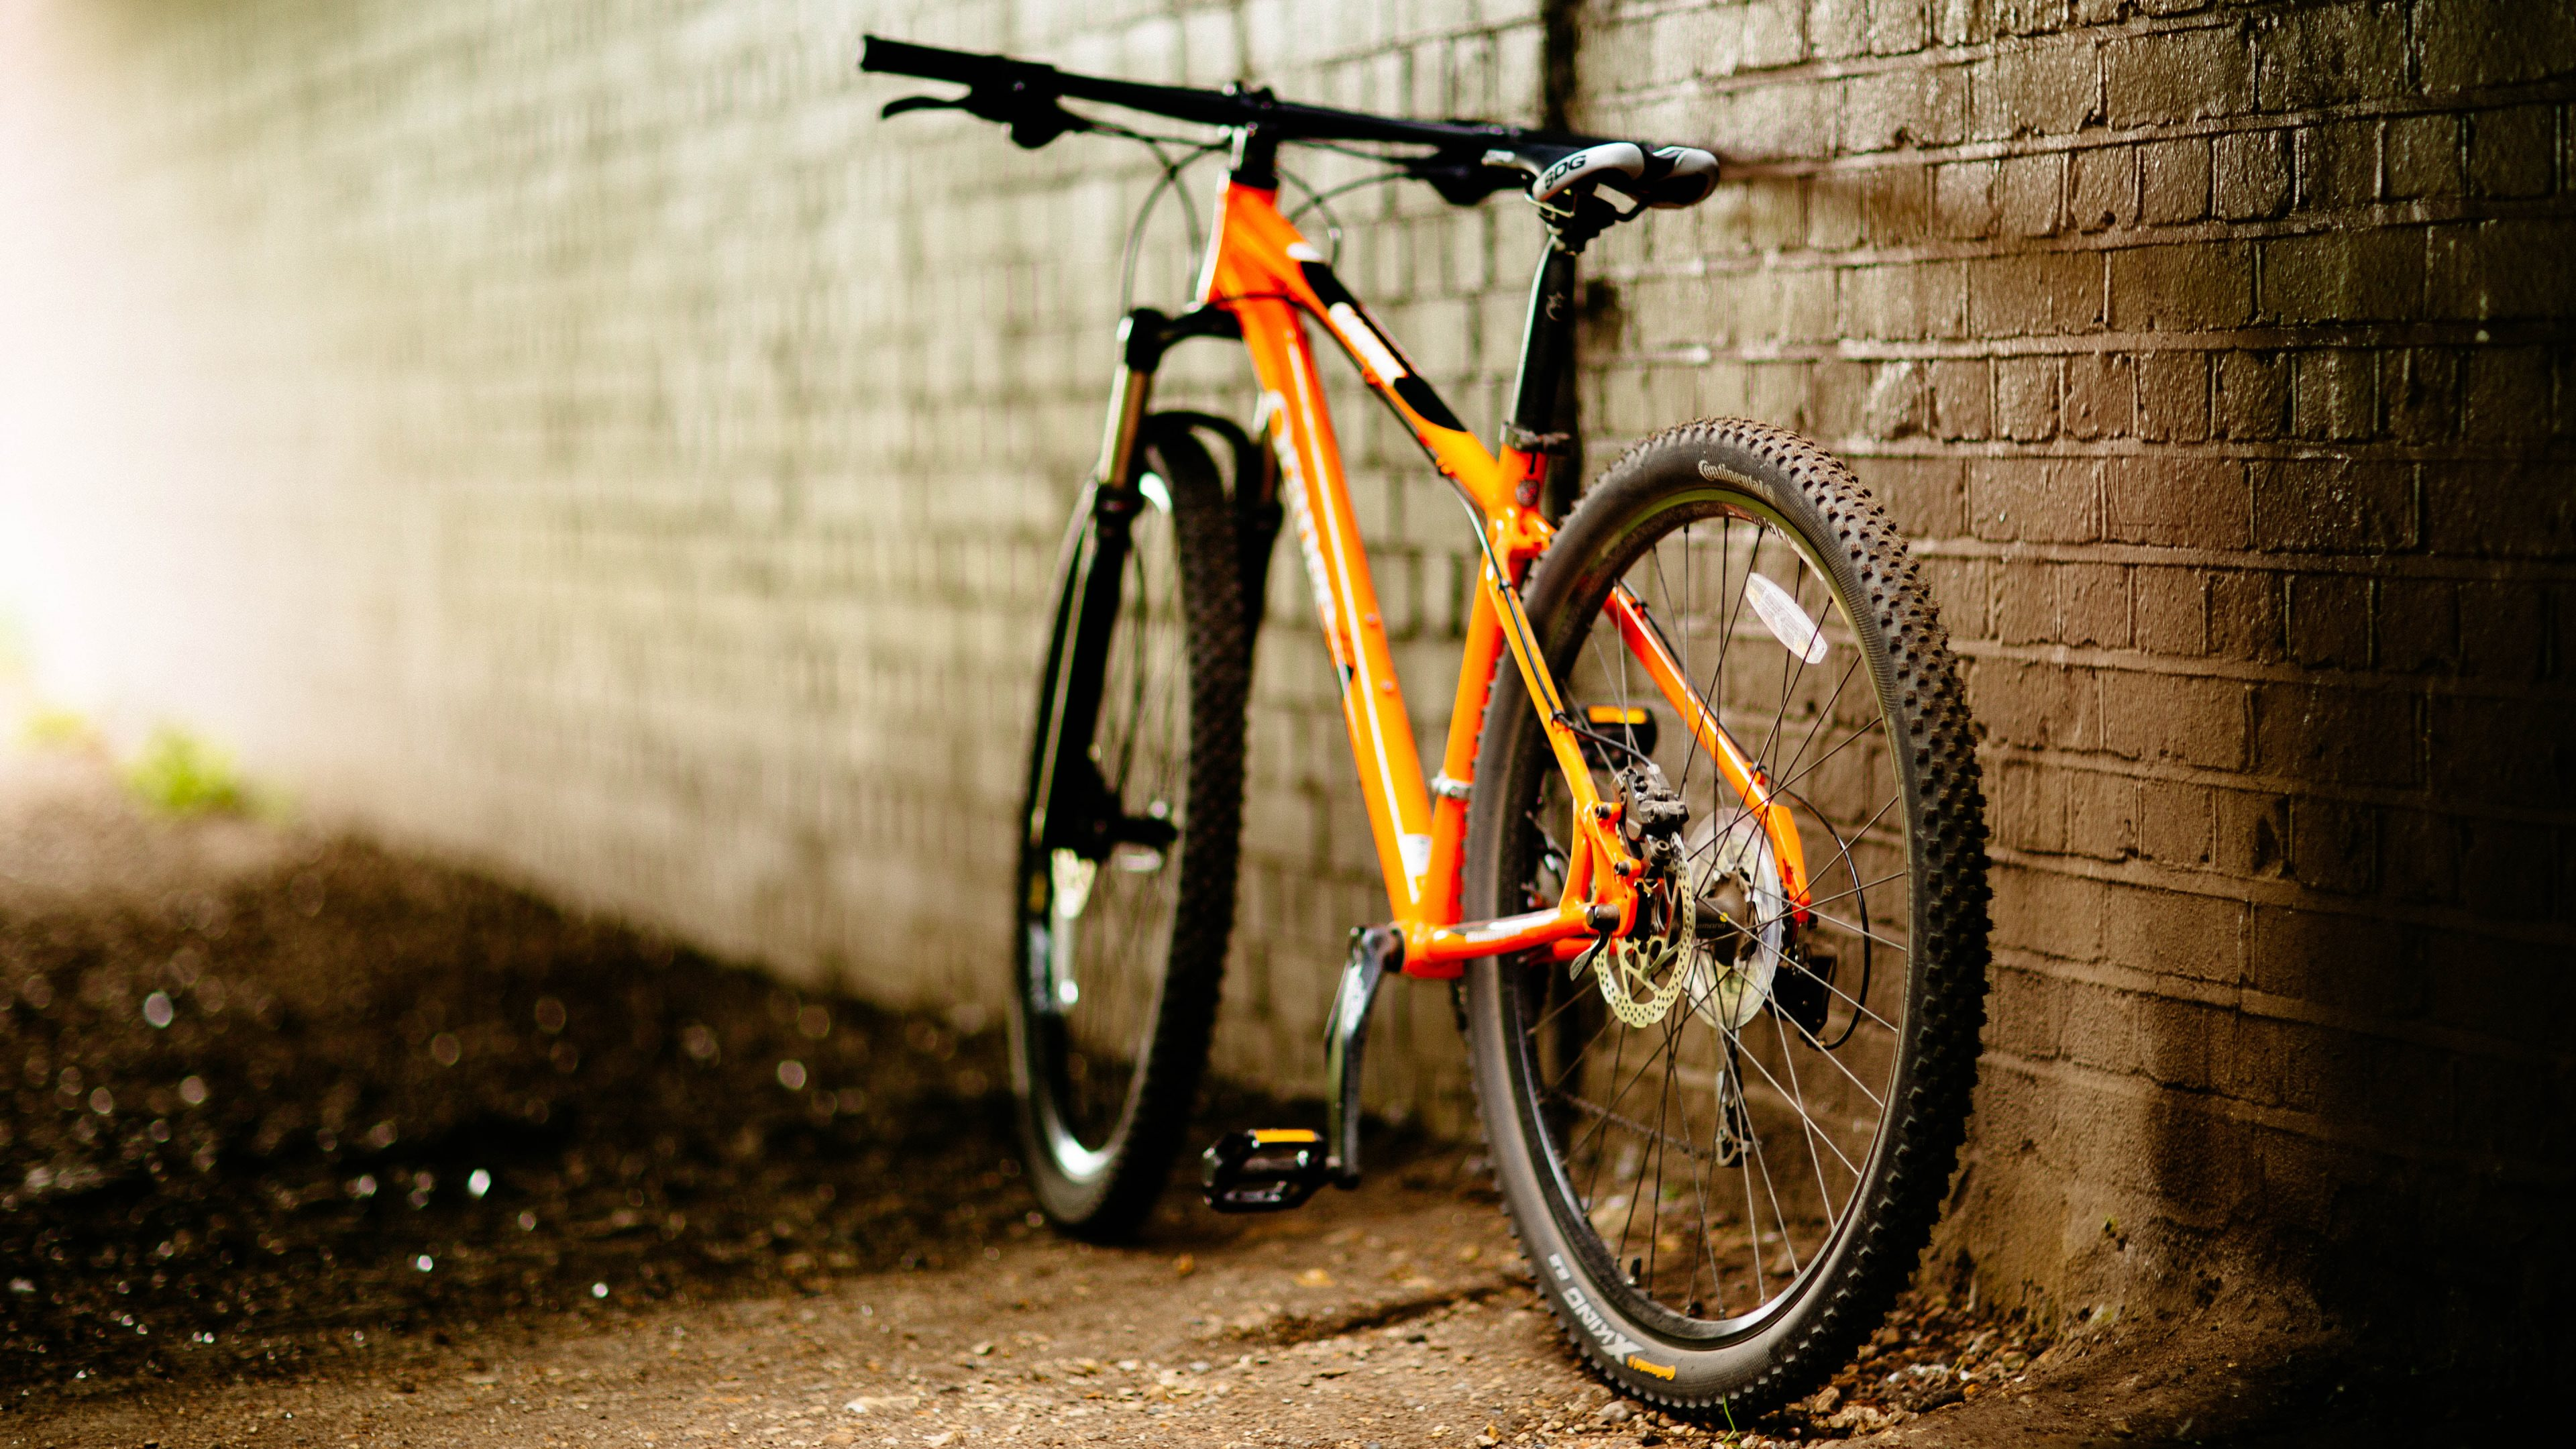 Background Images For Editing Hd Bike: Background Images - Wallpaper